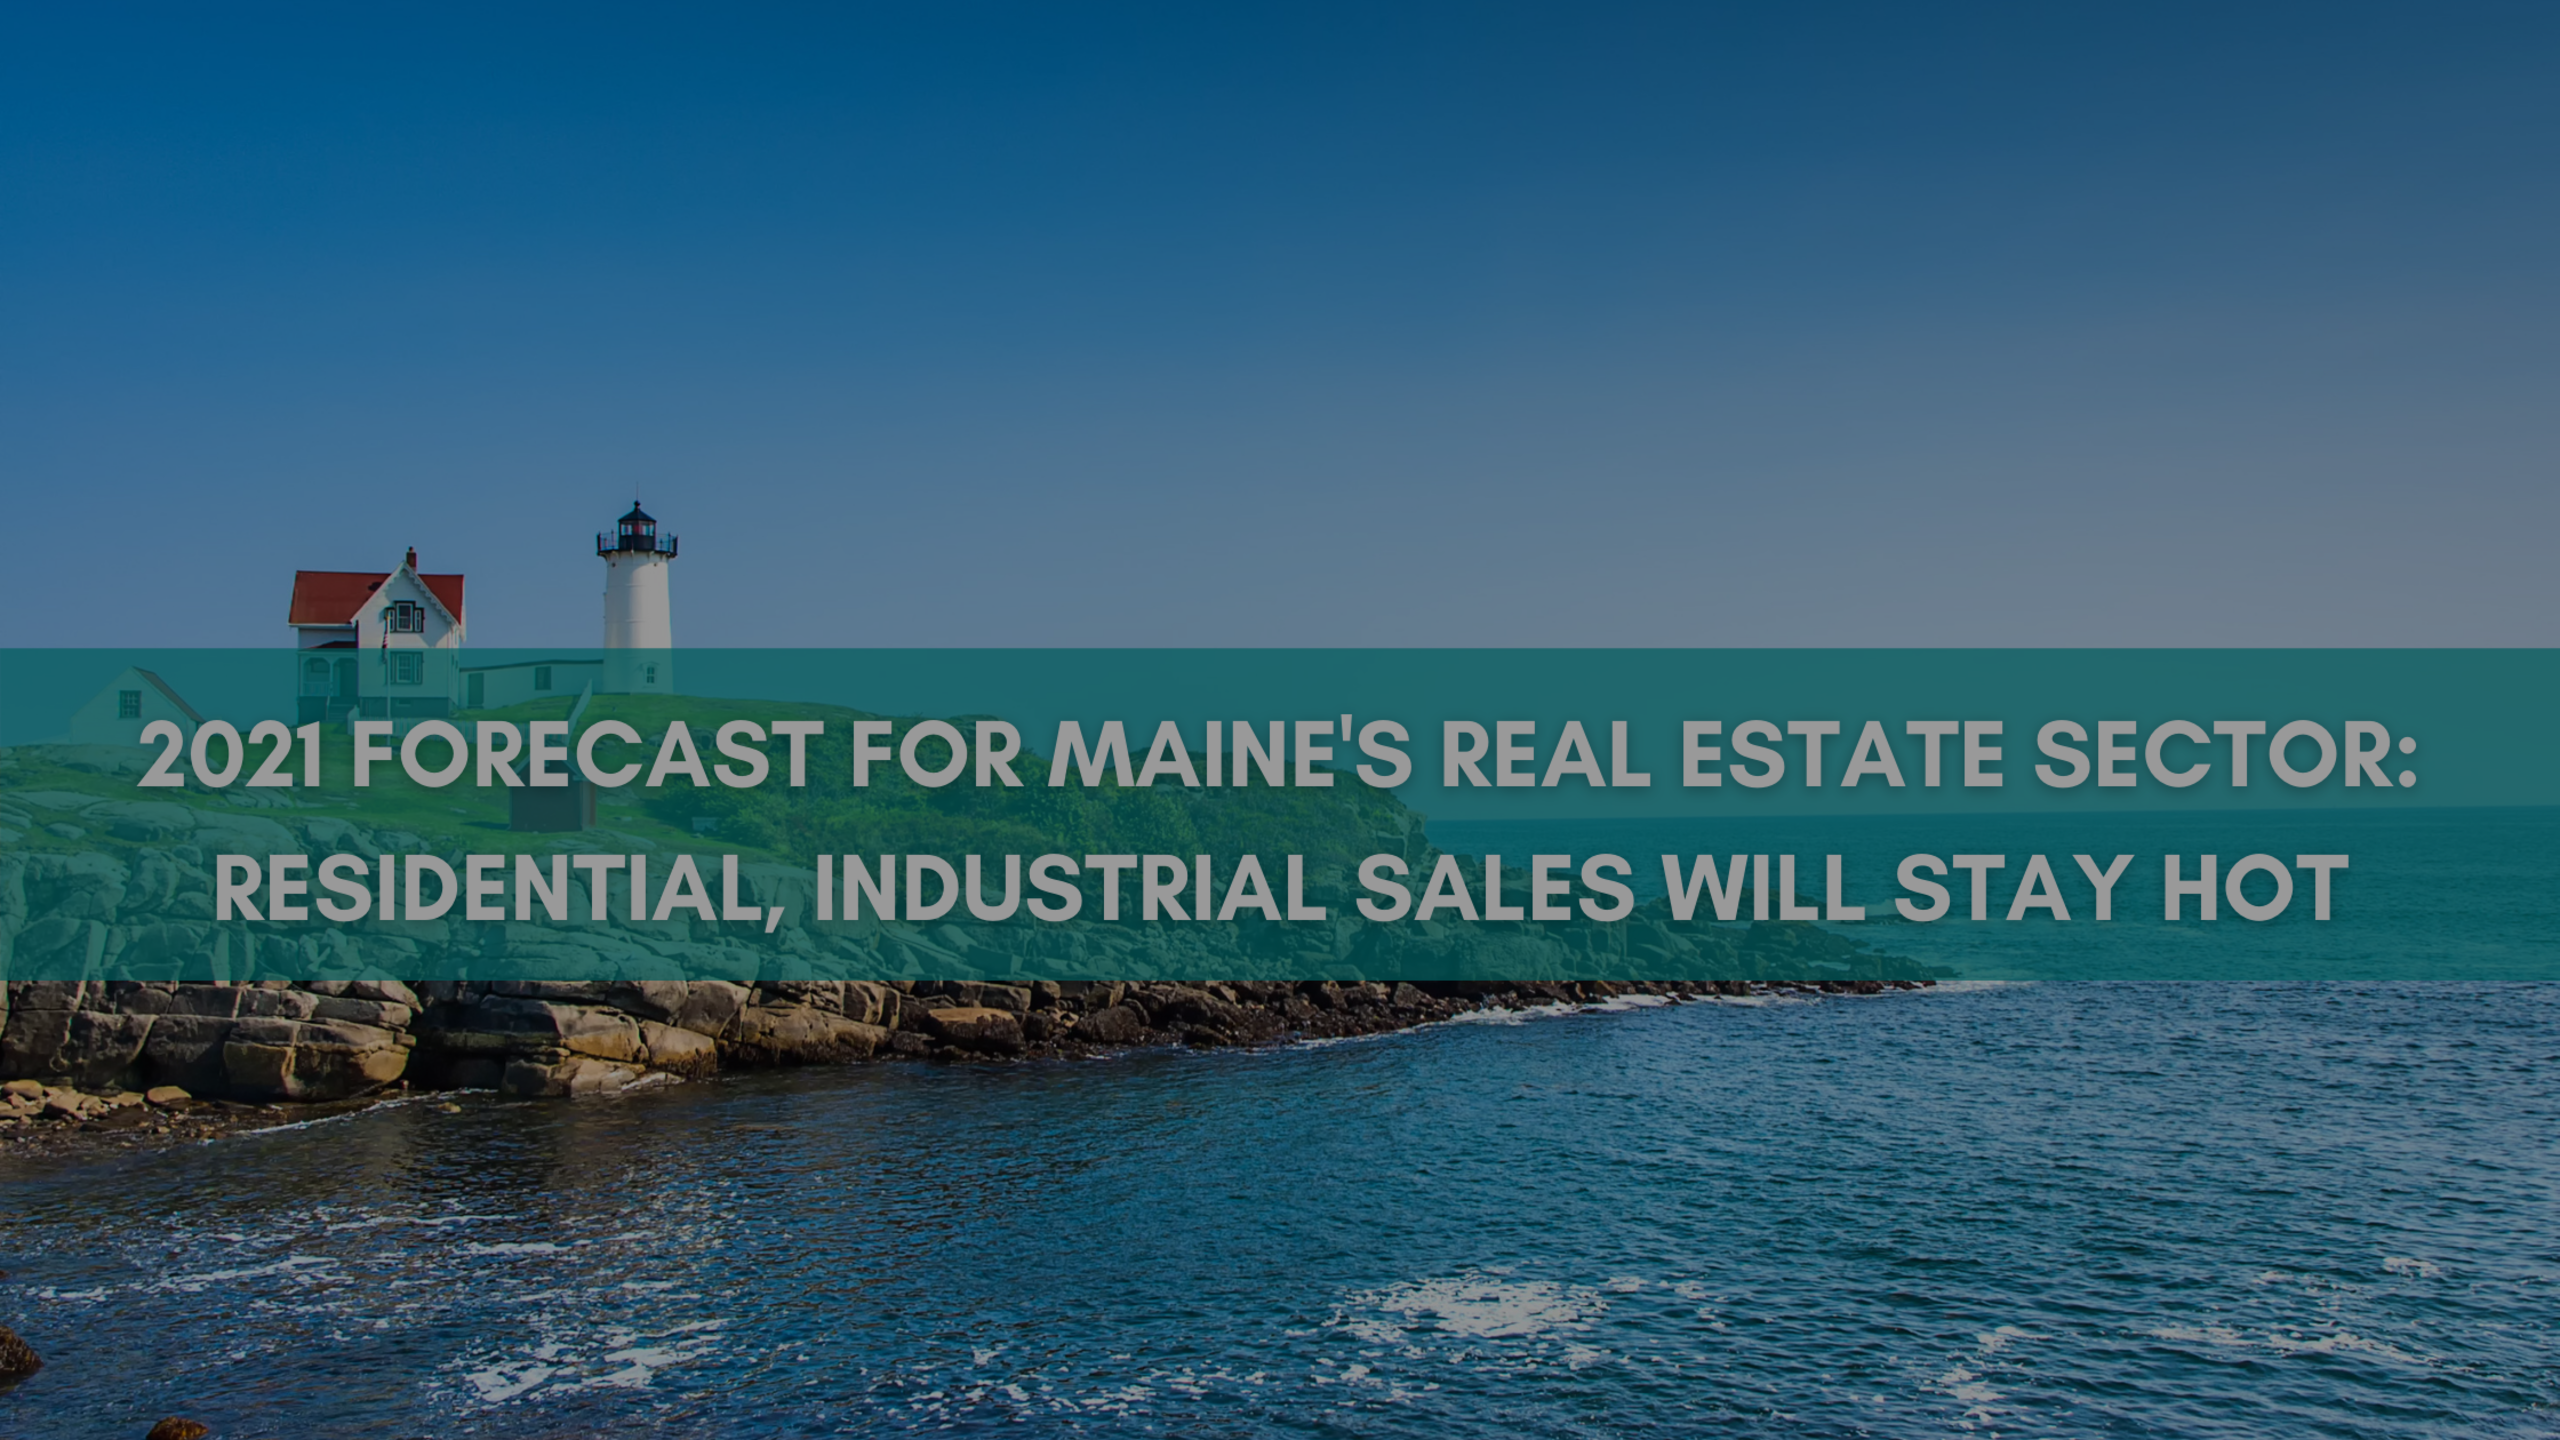 2021 forecast for Maine's real estate sector: Residential, industrial sales will stay hot